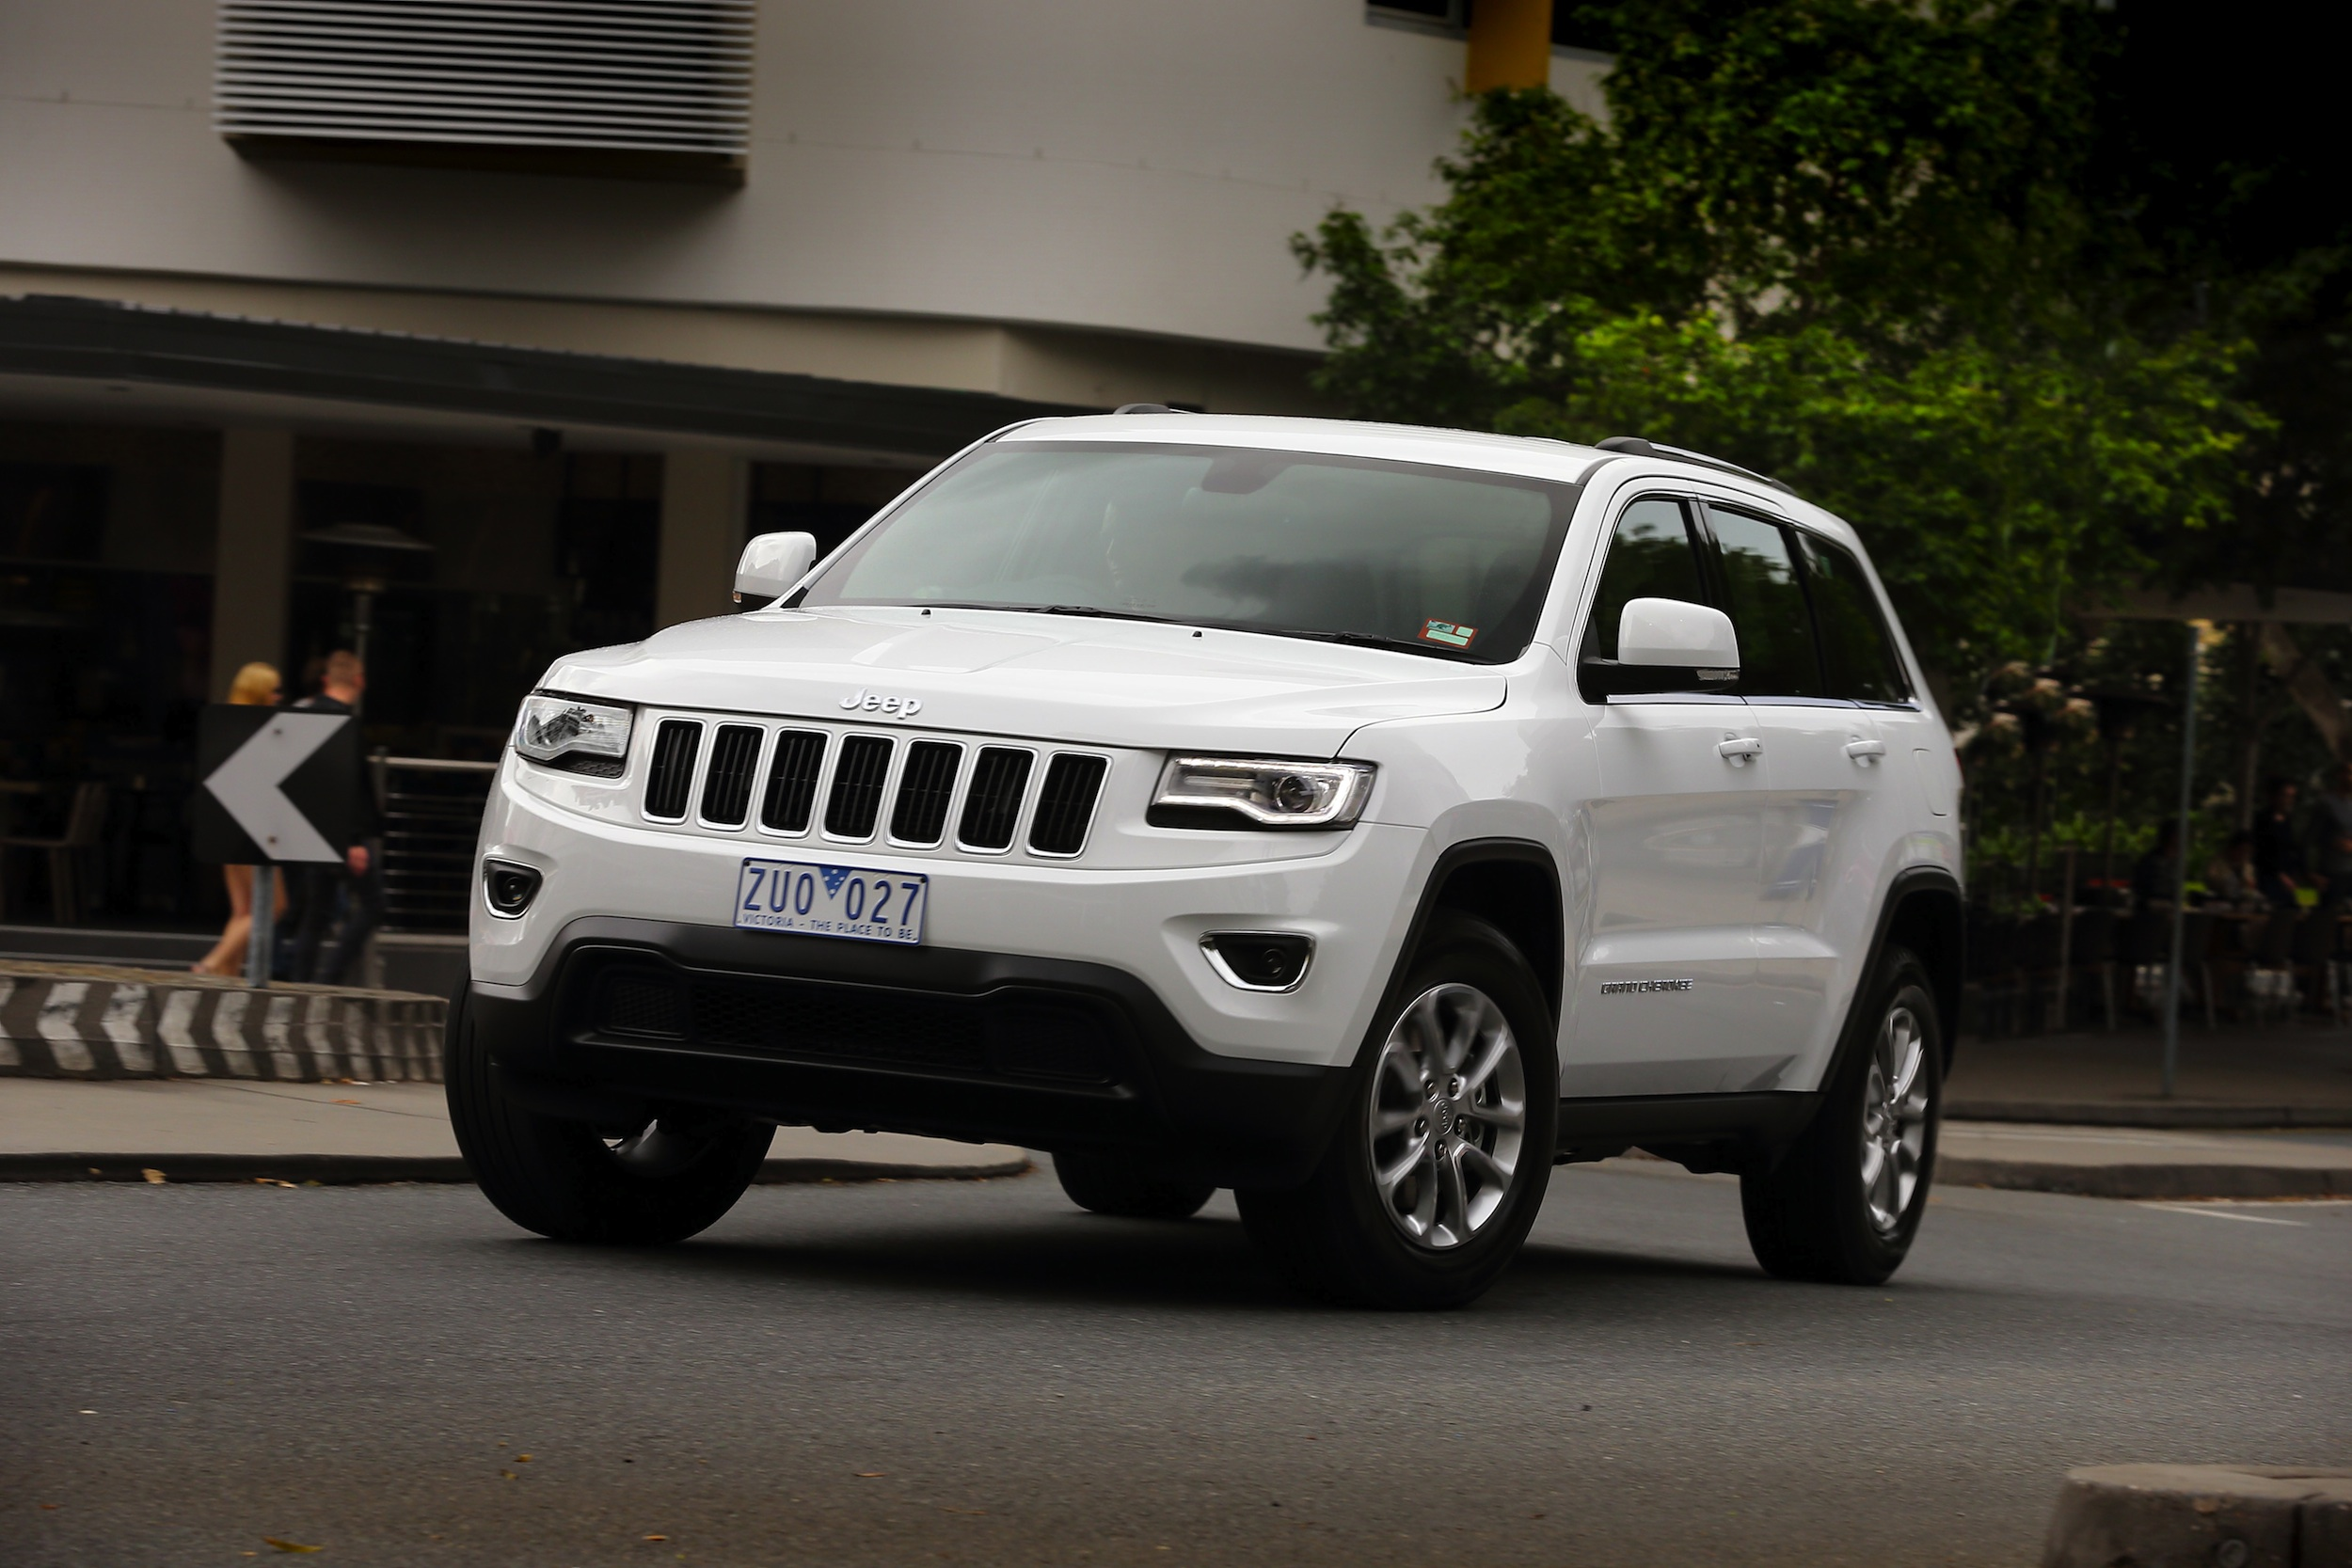 2013 Jeep Grand Cherokee Review - Photos